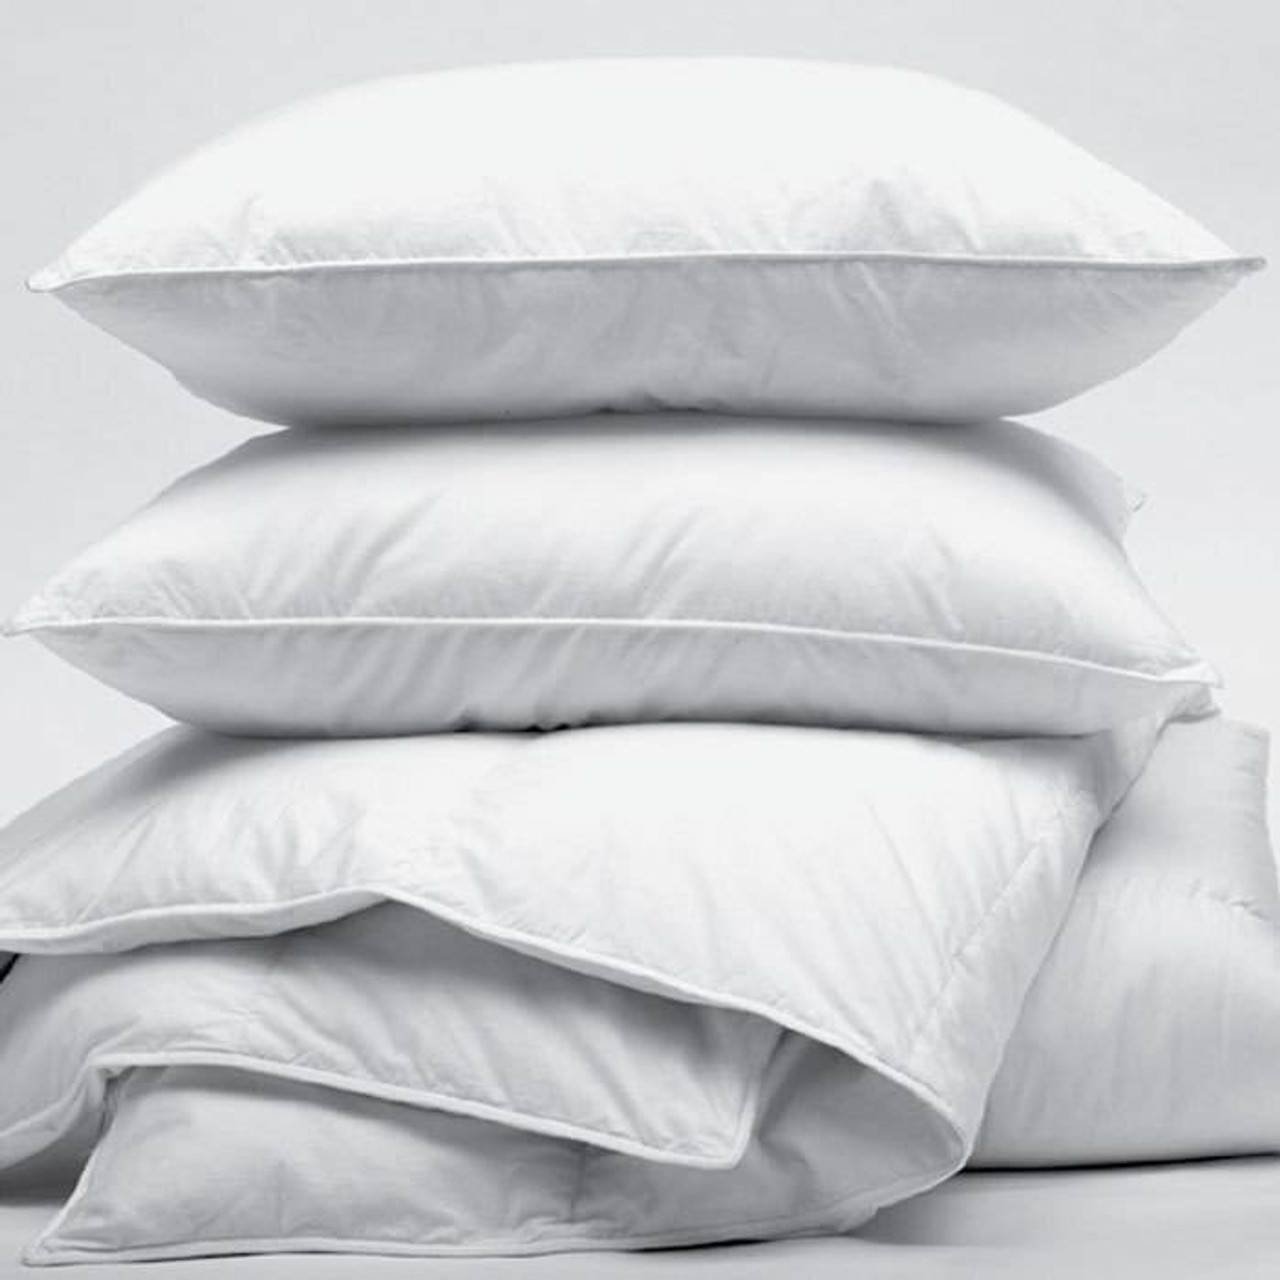 Ganesh Mills or Oxford Super Blend Ganesh Mills or Zippered or Pillows Protectoror pack of 12